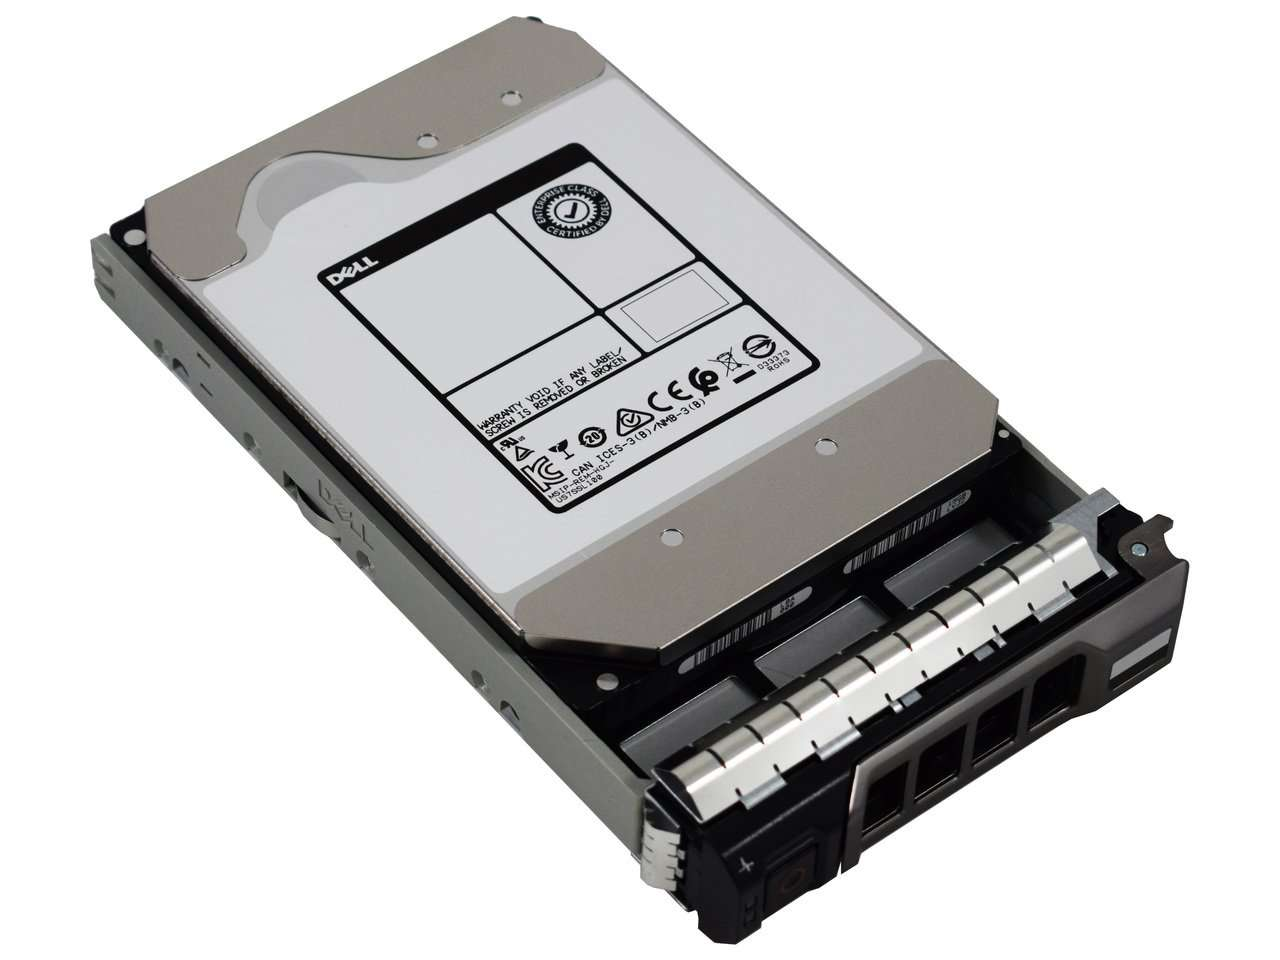 "Dell G13 0VY0MK 2TB 7.2K RPM SAS 6Gb/s 512n 128MB 3.5"" NearLine Manufacturer Recertified HDD"